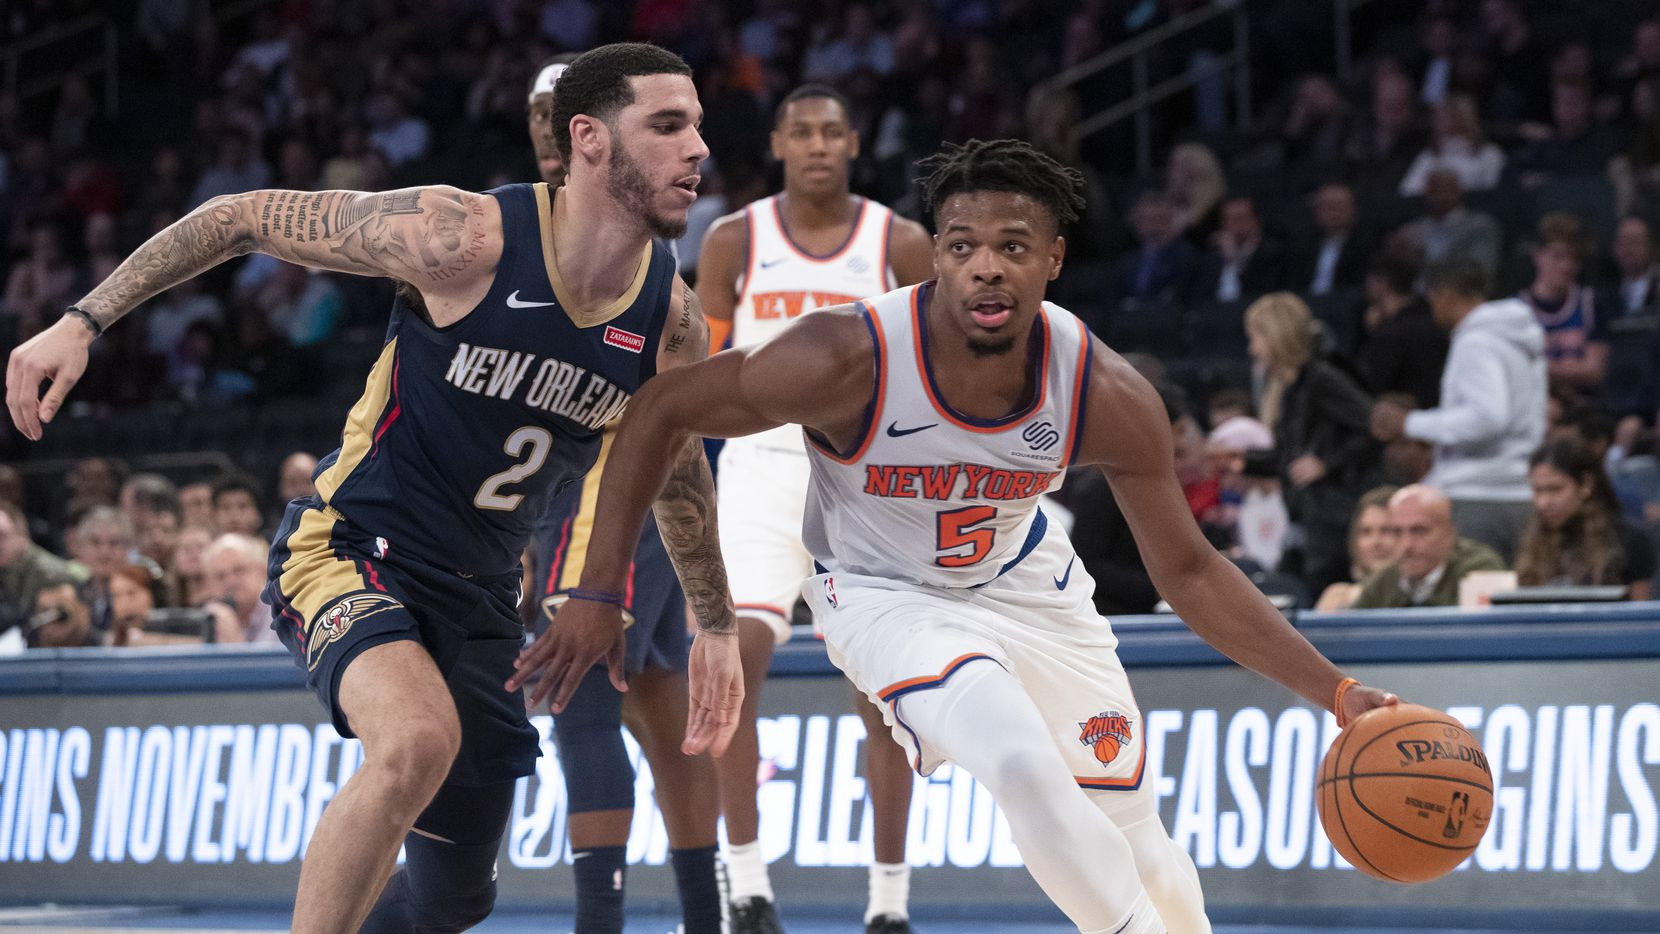 New York Knicks guard Dennis Smith Jr. (5) /drives to the basket against New Orleans Pelicans guard Lonzo Ball (2) during the second half of a preseason NBA basketball game, Friday, Oct. 18, 2019, at Madison Square Garden in New York. The Pelicans won 117-116. (AP Photo/Mary Altaffer)